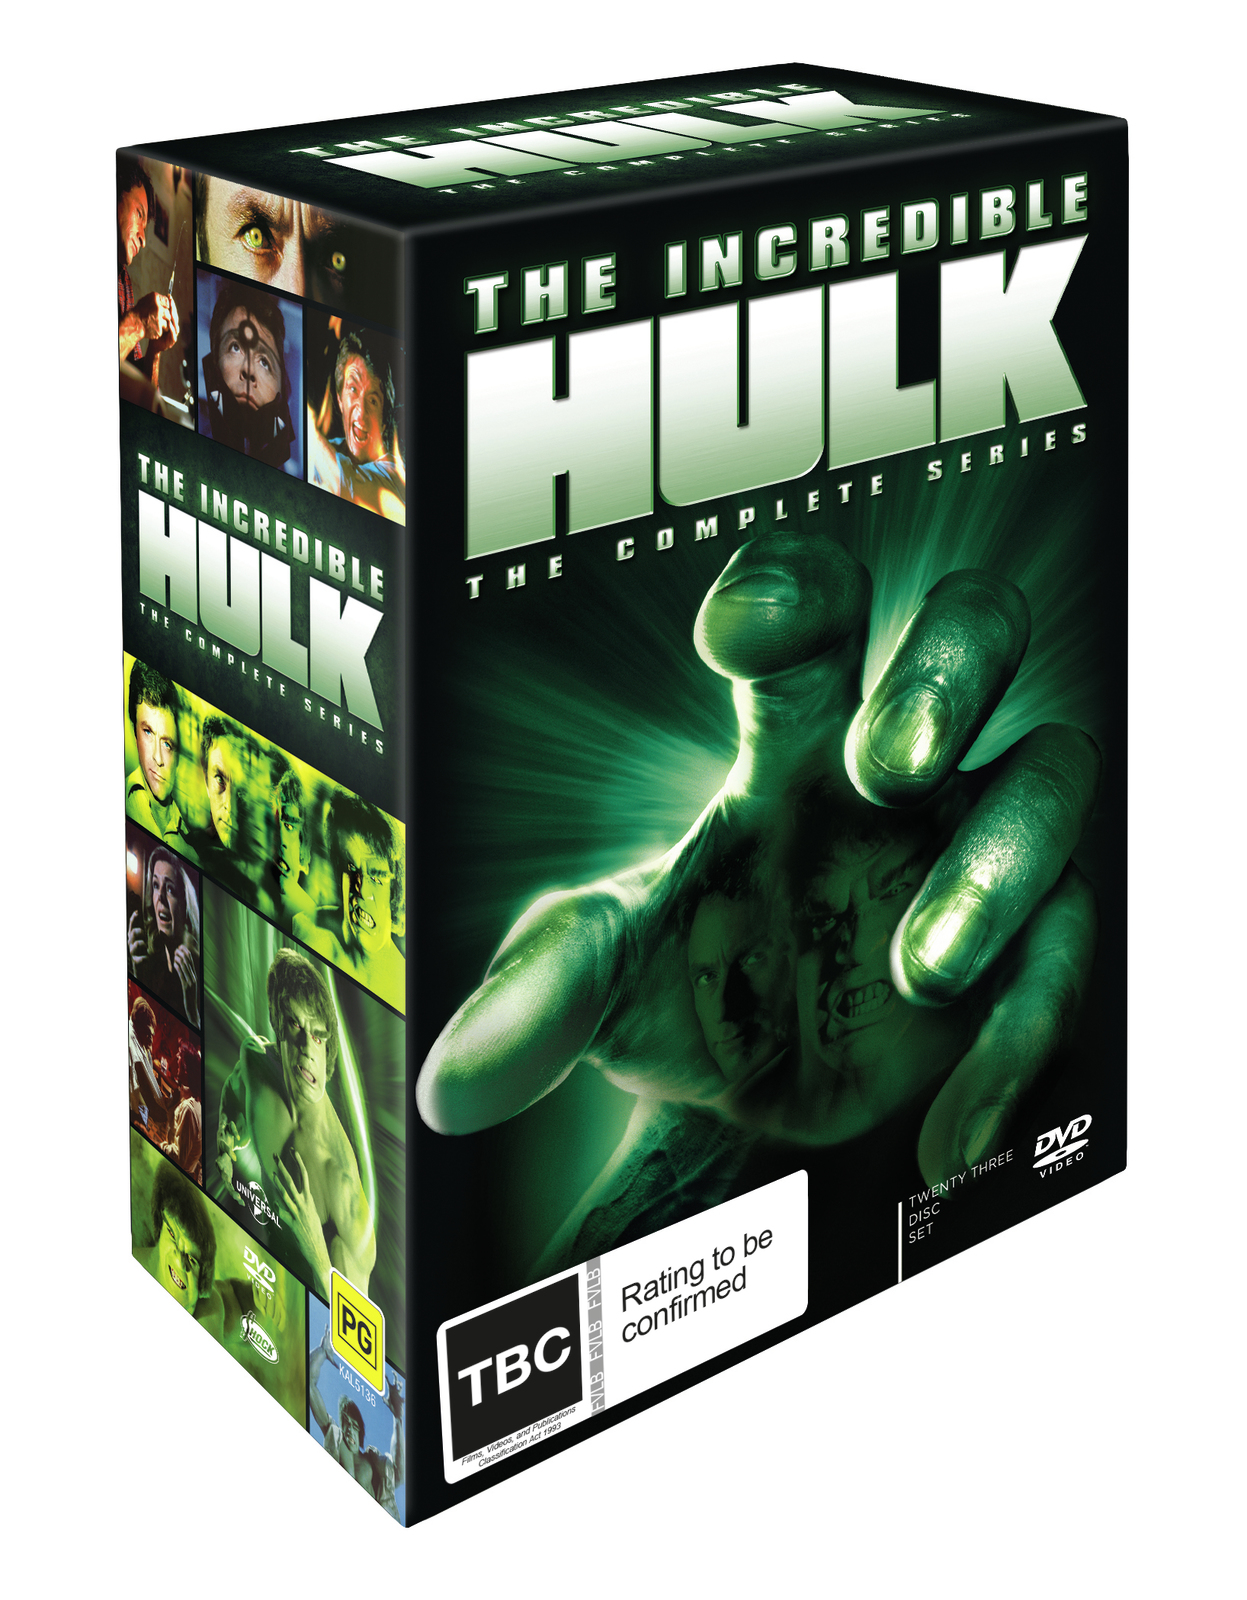 The Incredible Hulk Complete Tv Series | DVD | In-Stock ...